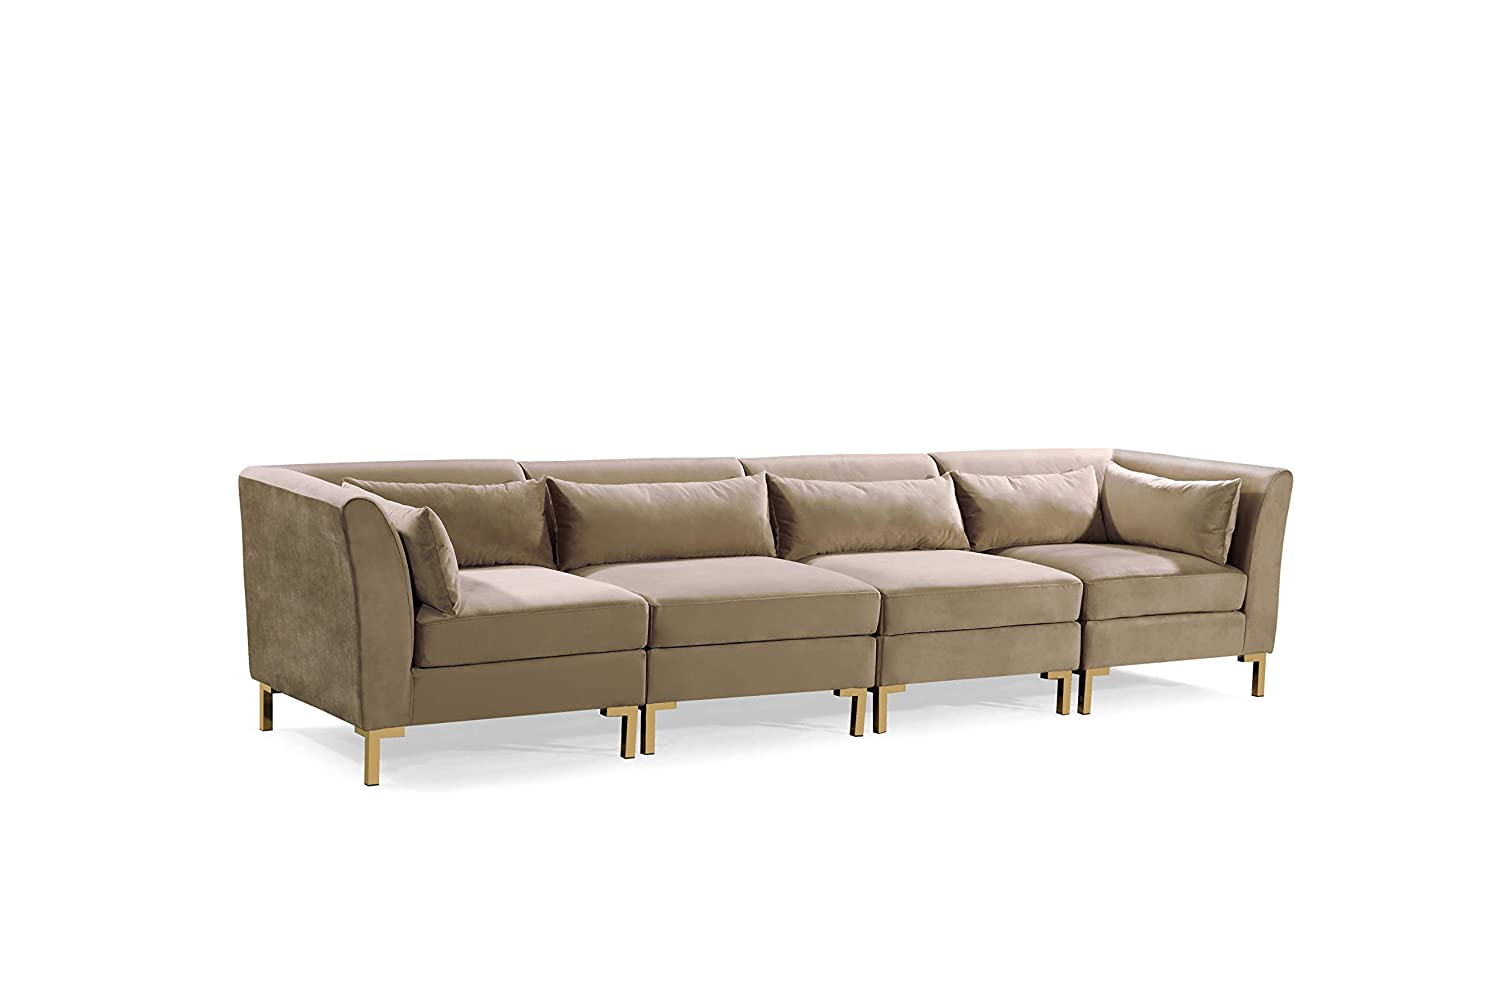 Admirable Iconic Home Fsa9260 An Girardi Modular Chaise Sectional Sofa Velvet Upholstered Solid Gold Tone Metal Y Leg With 6 Throw Pillows Modern Contemporary Pabps2019 Chair Design Images Pabps2019Com